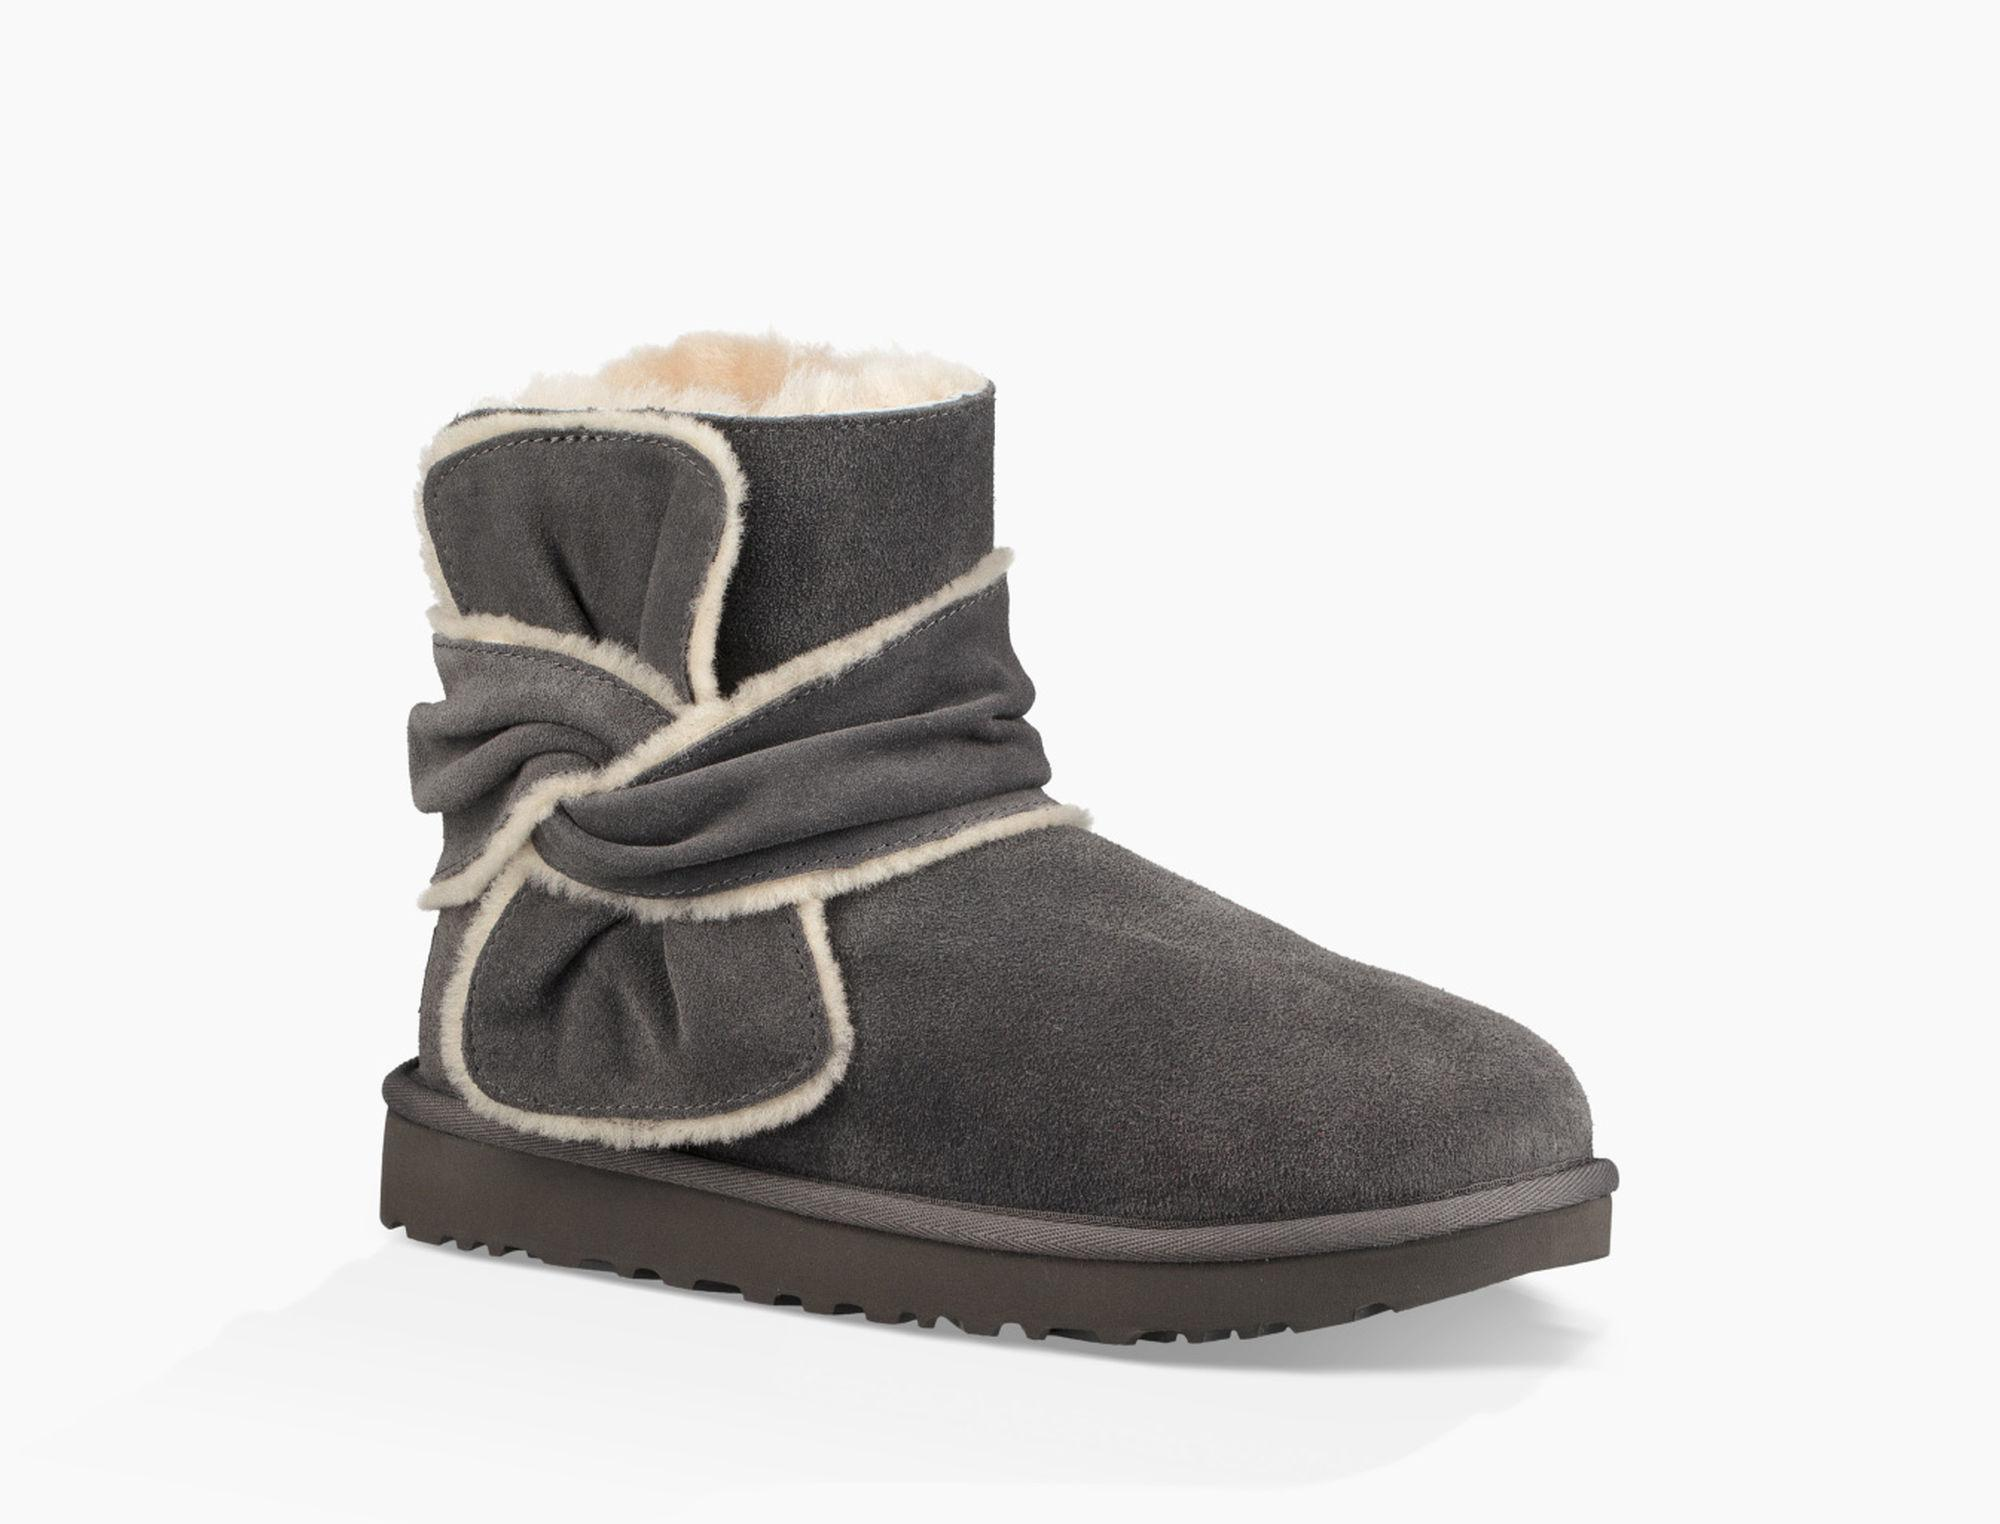 f912d7b86e Gallery. Previously sold at  UGG · Women s Frye Jenna Women s Cole Haan  Abbot Women s Suede Heeled Boots ...